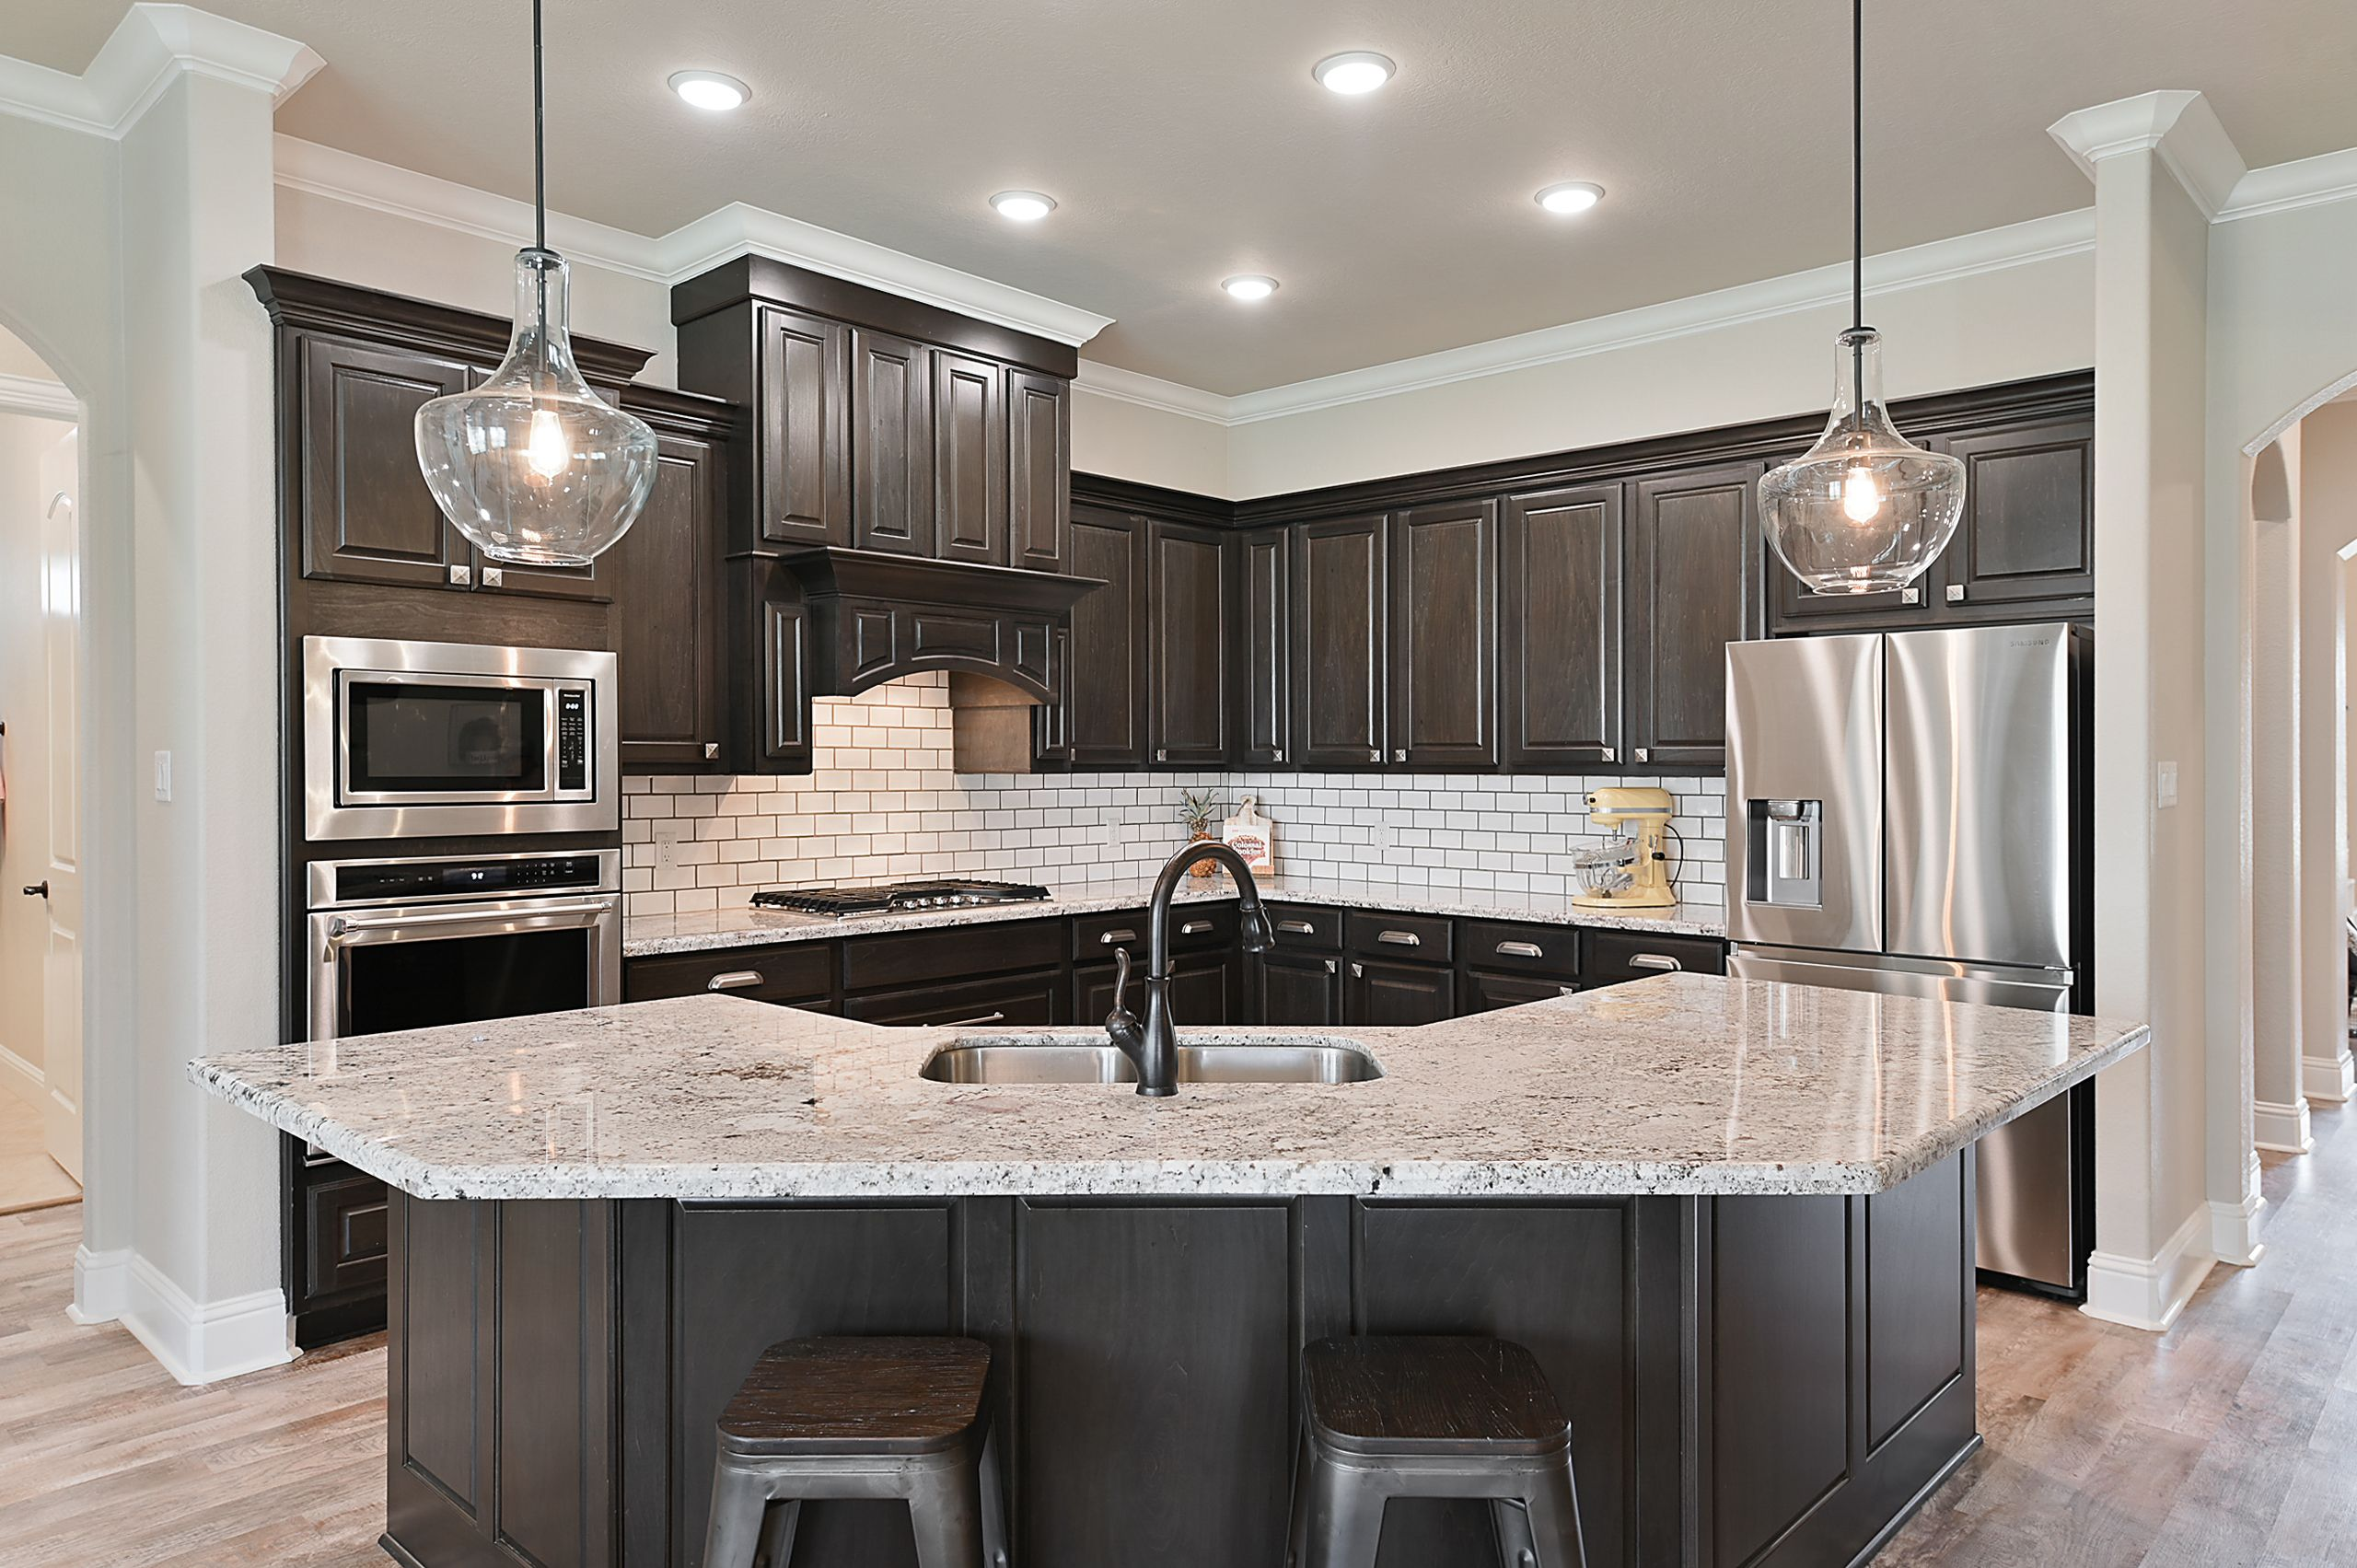 Kitchen featured in the 4406 Uphor Court By Blackstone Homes in Bryan-College Station, TX